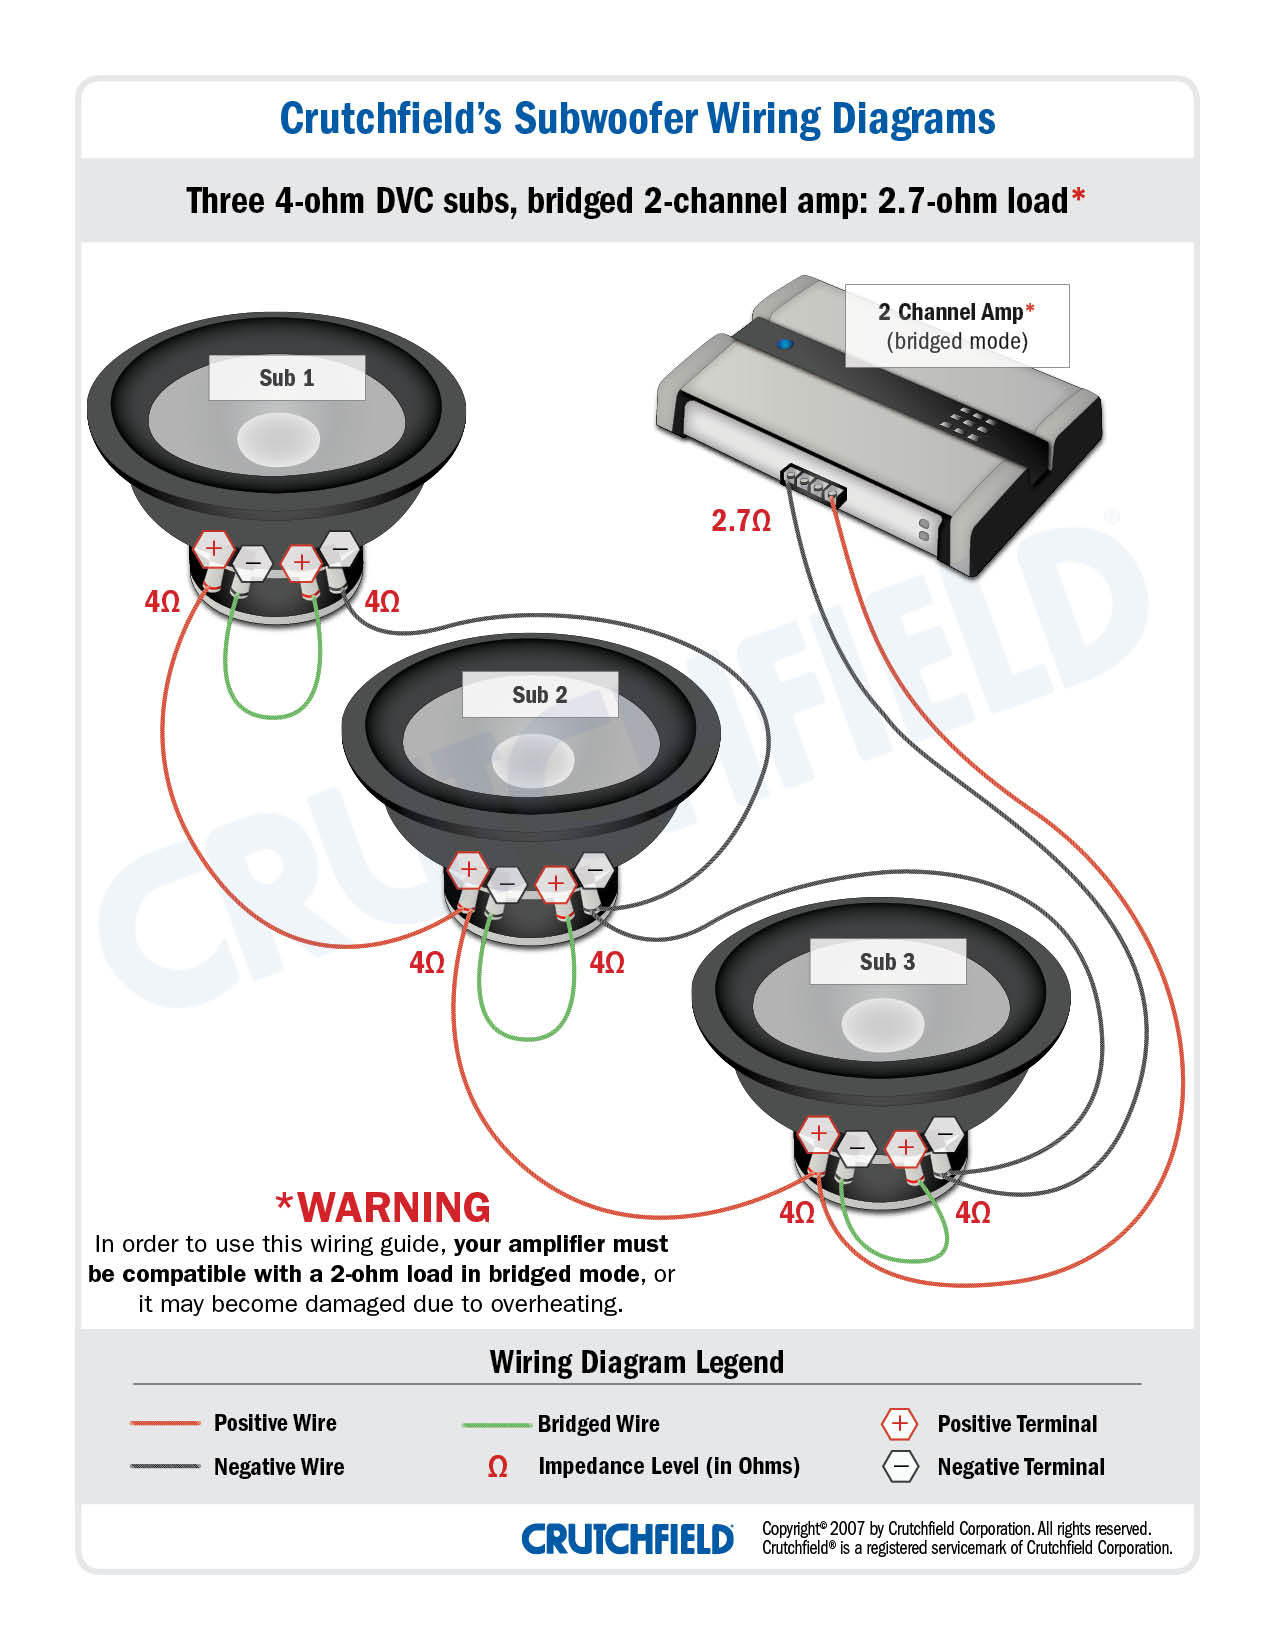 subwoofer wiring diagrams rh crutchfield com sub wiring diagram crutchfield Home Stereo Subwoofer Wiring